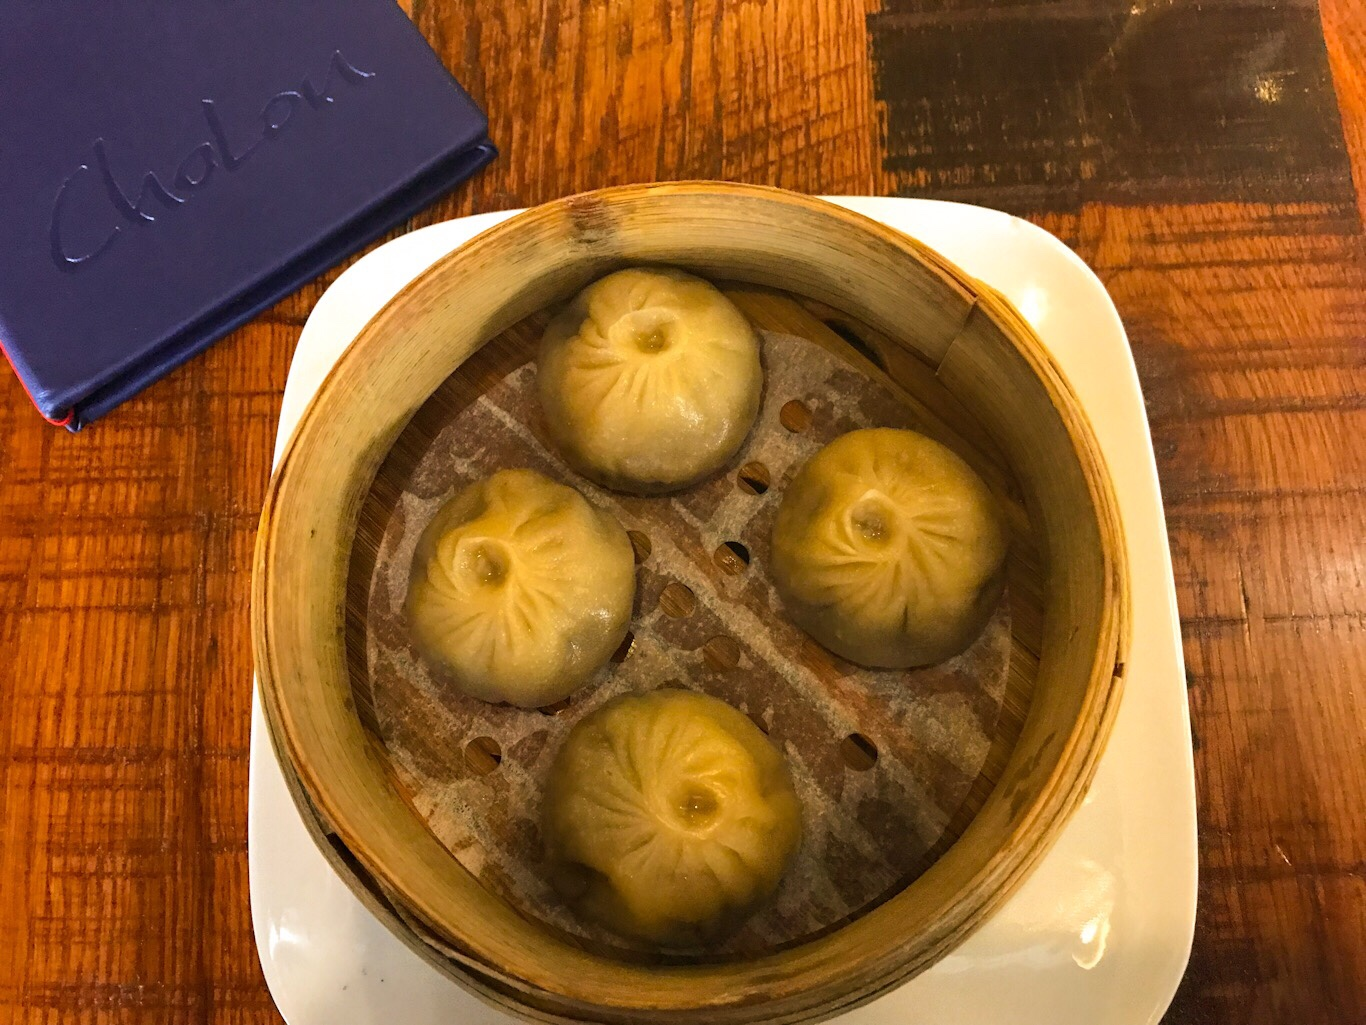 In Denver, CO a restaurant called ChoLon serves French Onion Soup Dumplings that are filled with sweet onion, melty gruyere cheese and deliciously rich French onion broth. They are served piping hot in a small steamer basket and are one of the best dishes I've ever eaten.